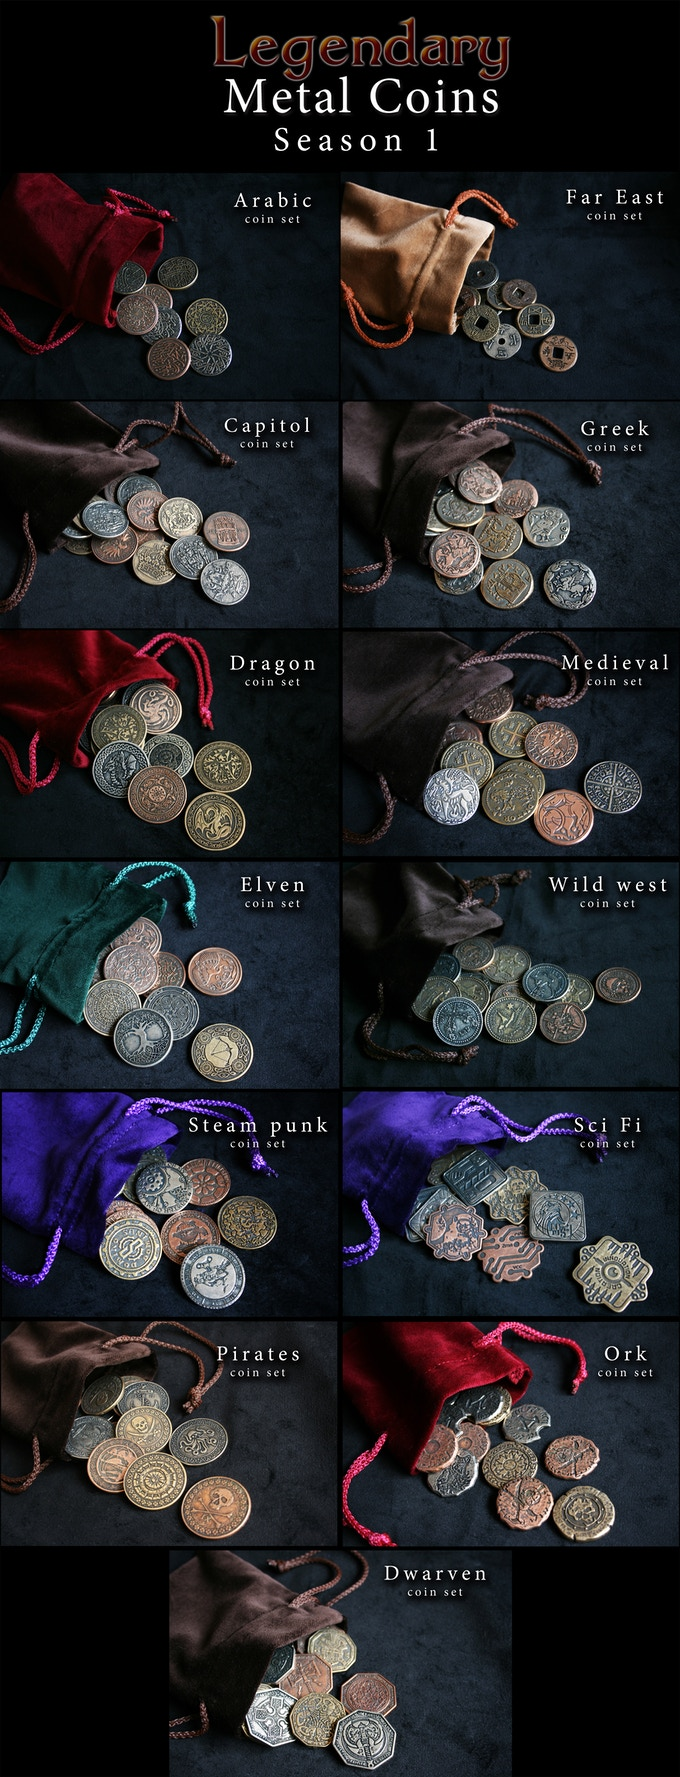 Since it is our Legendary Metal Coins Season 2, you can still get the ones from Season 1! Click on the image above to check the coins and read all the details about them.